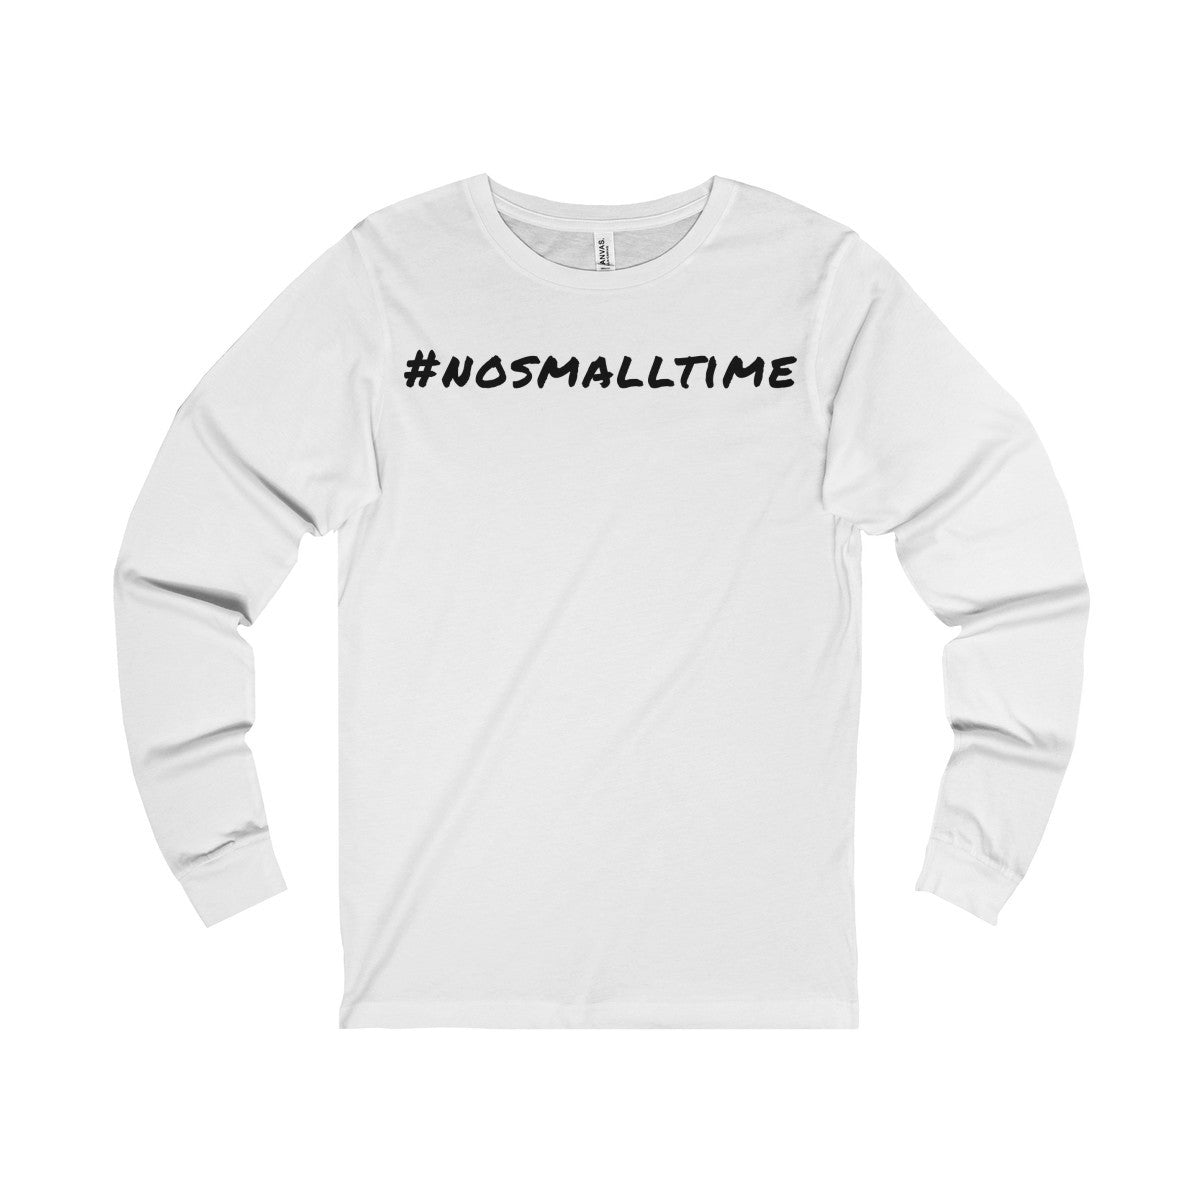 #nosmalltime Long Sleeve T-Shirt, Black Print